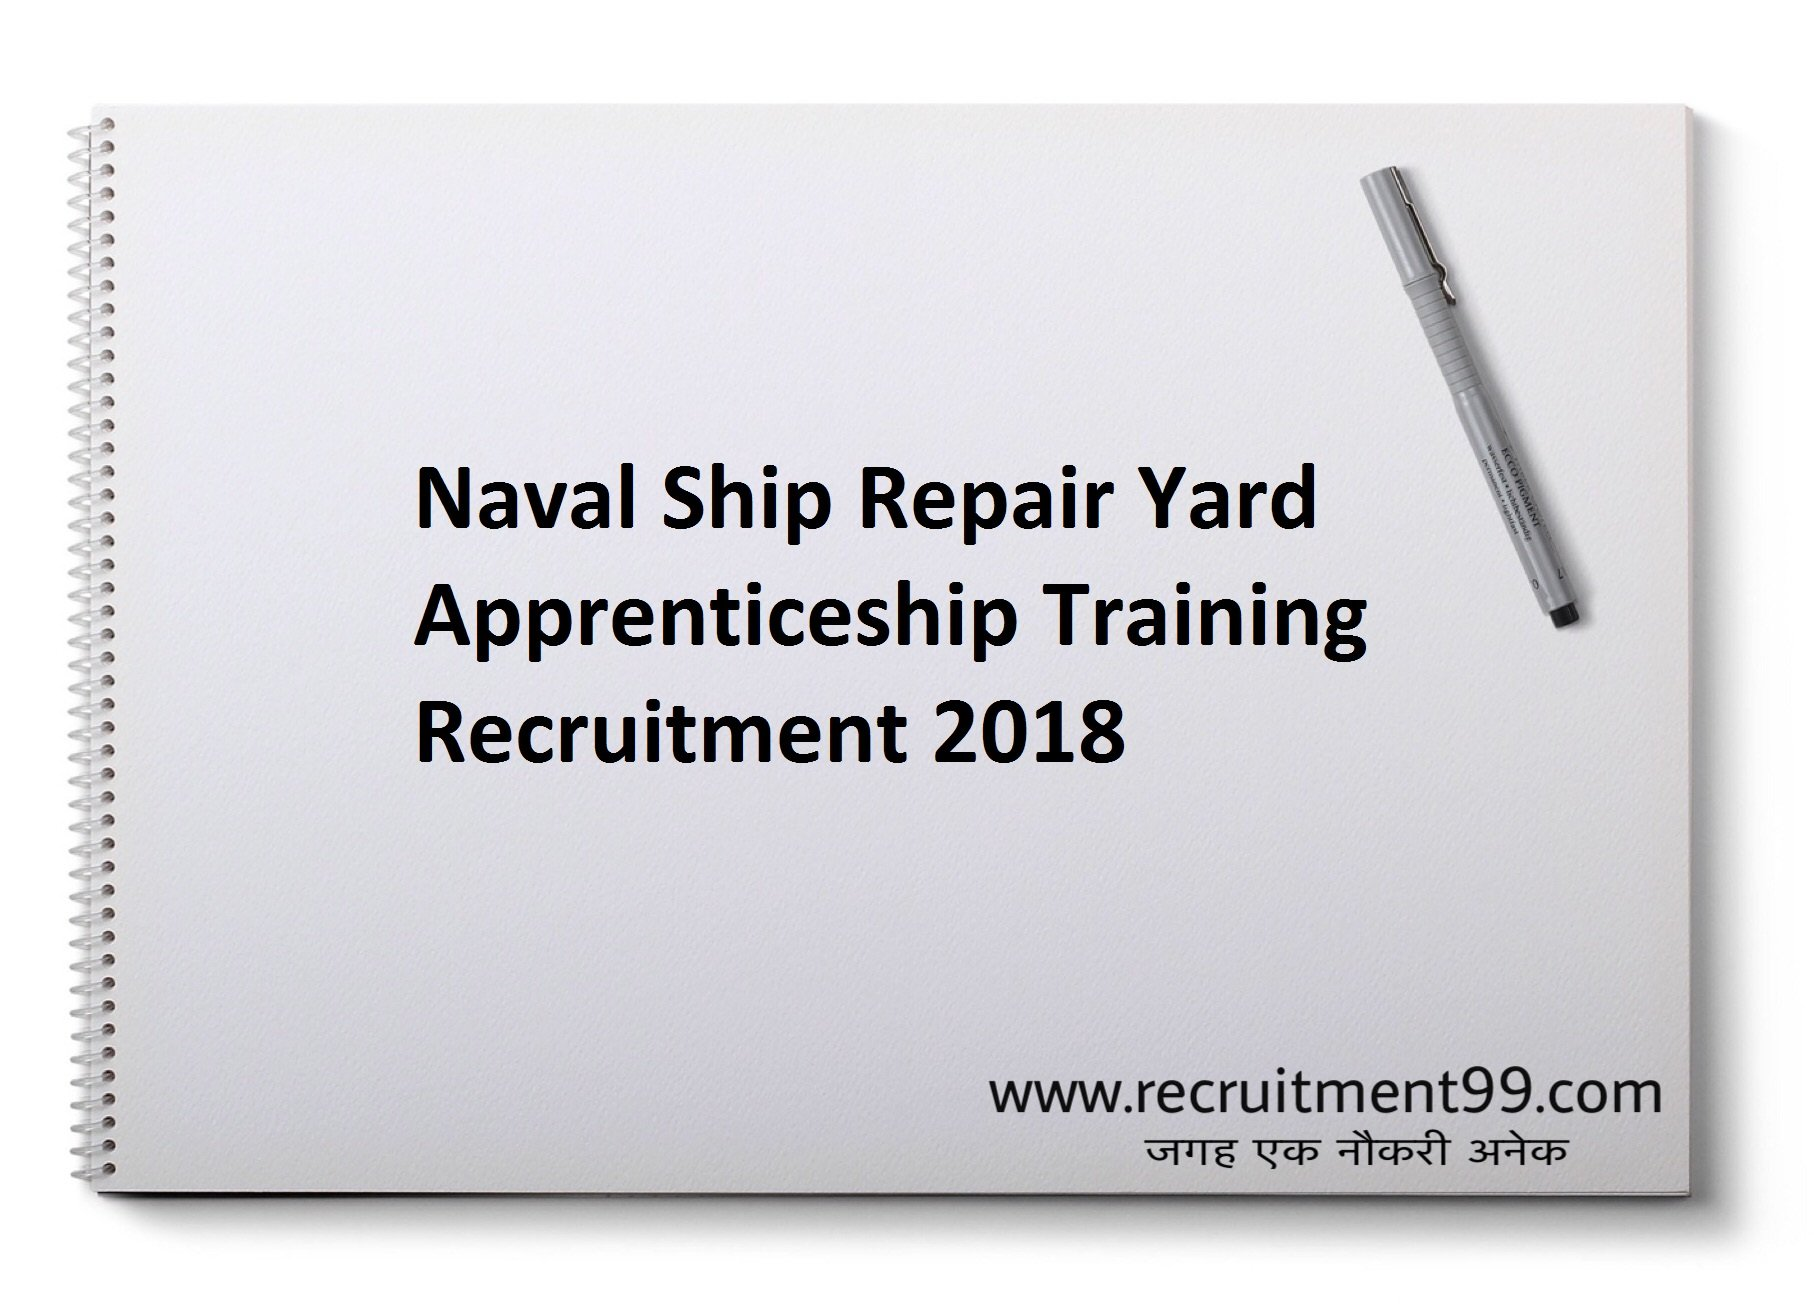 Naval Ship Repair Yard Apprenticeship Training Recruitment Admit Card Result 2018